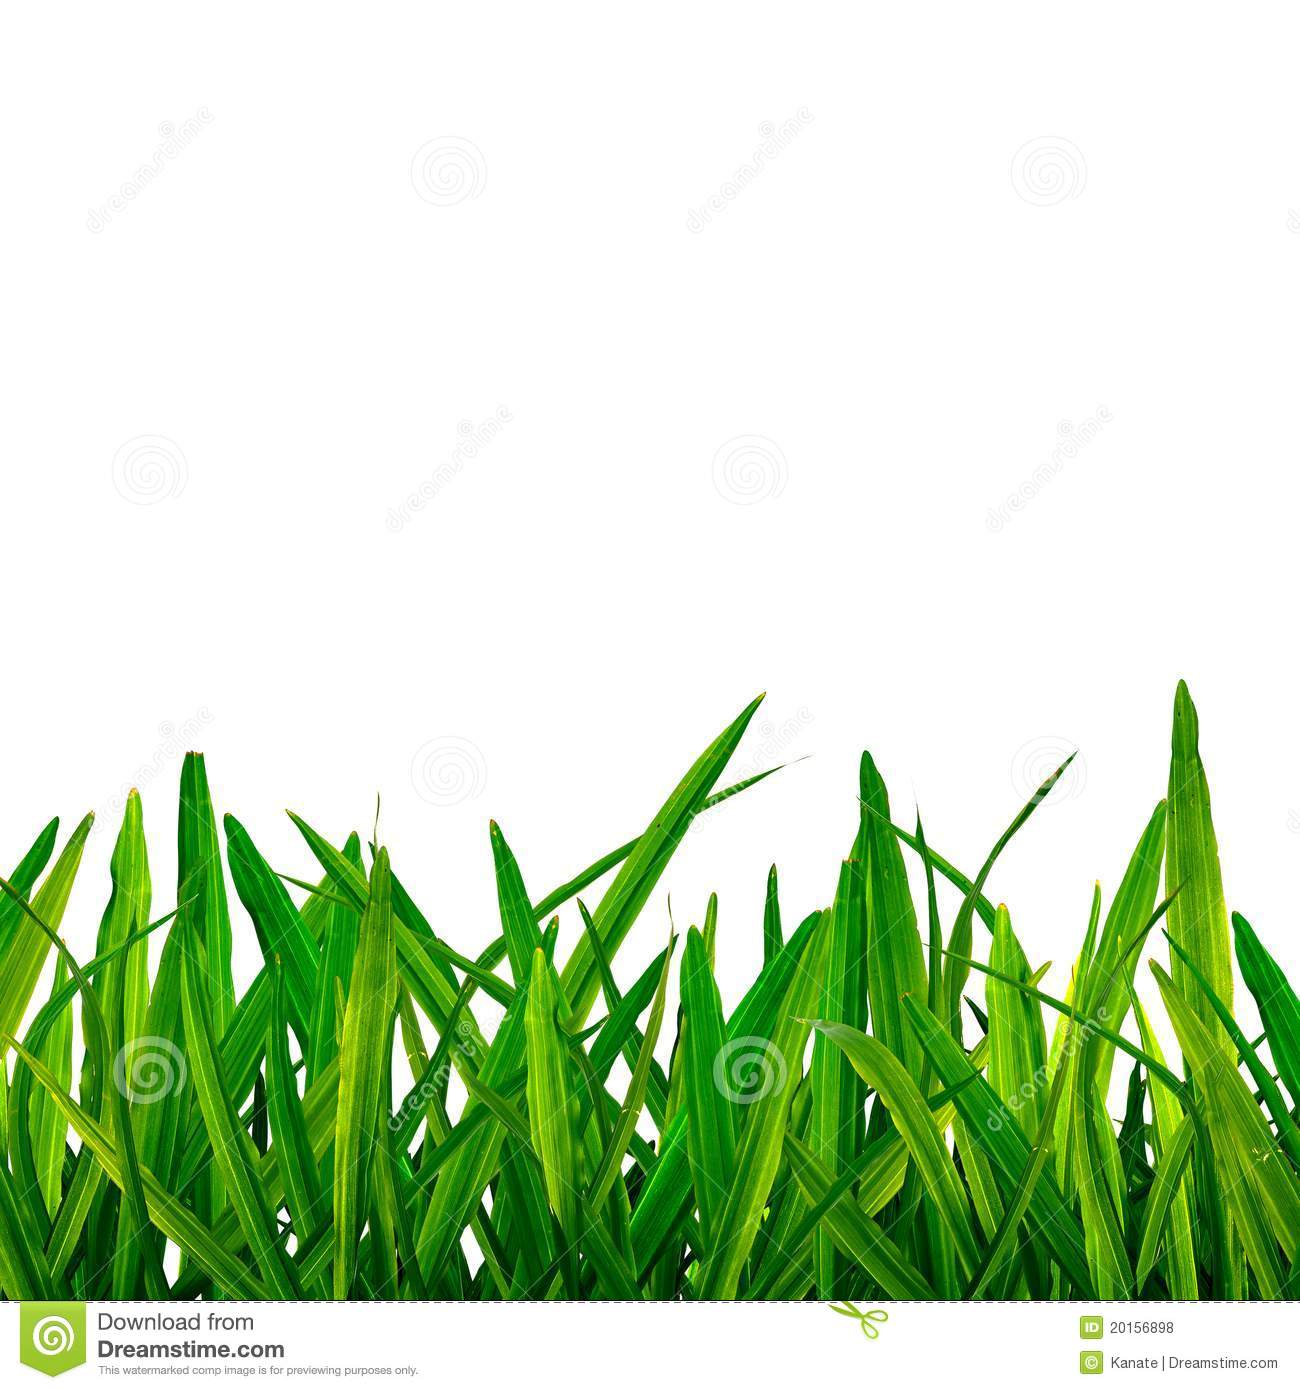 grass background clipart - photo #12